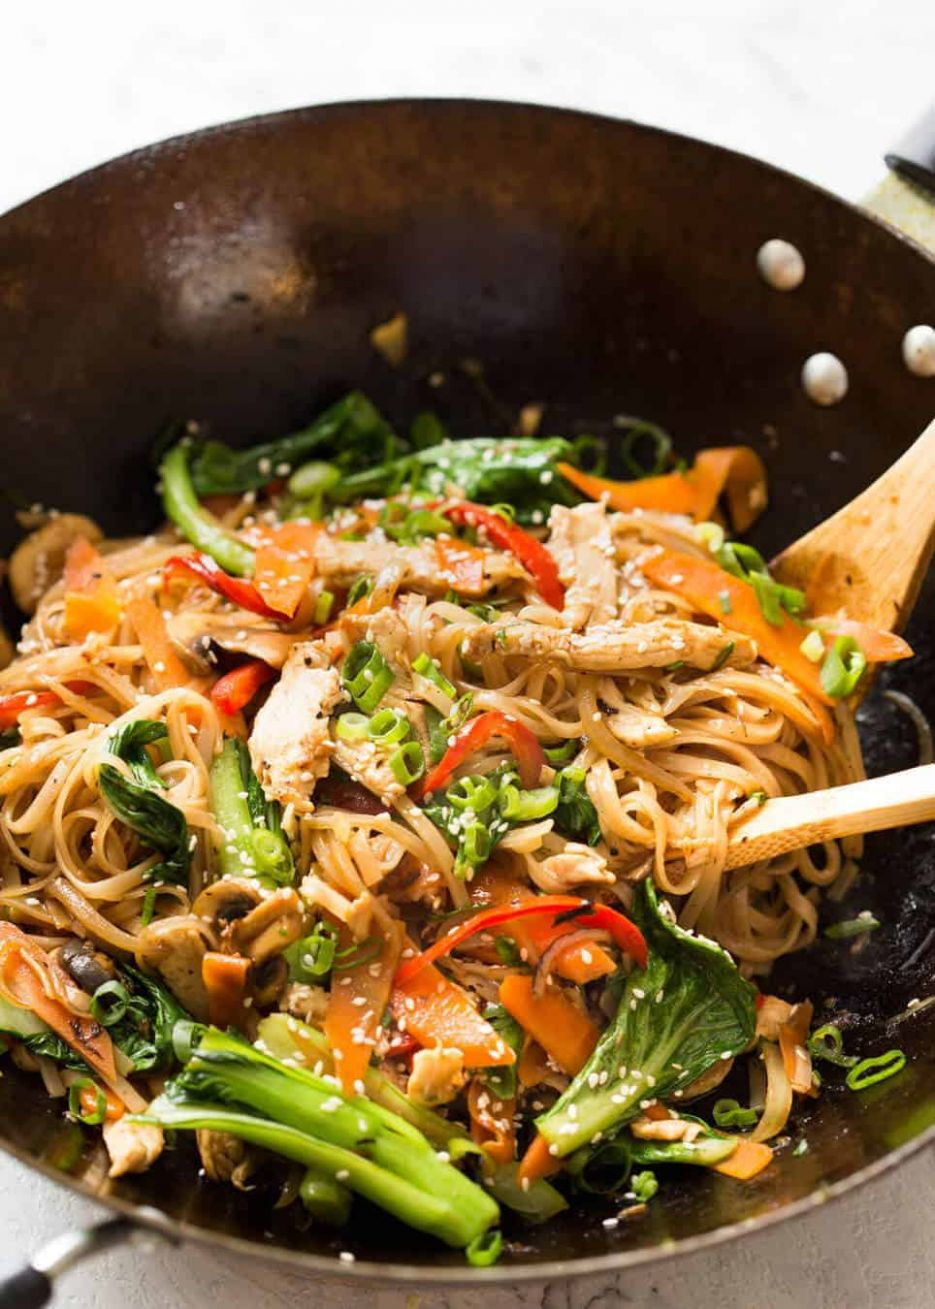 Chicken Stir Fry with Rice Noodles - Recipes Rice Stick Noodles